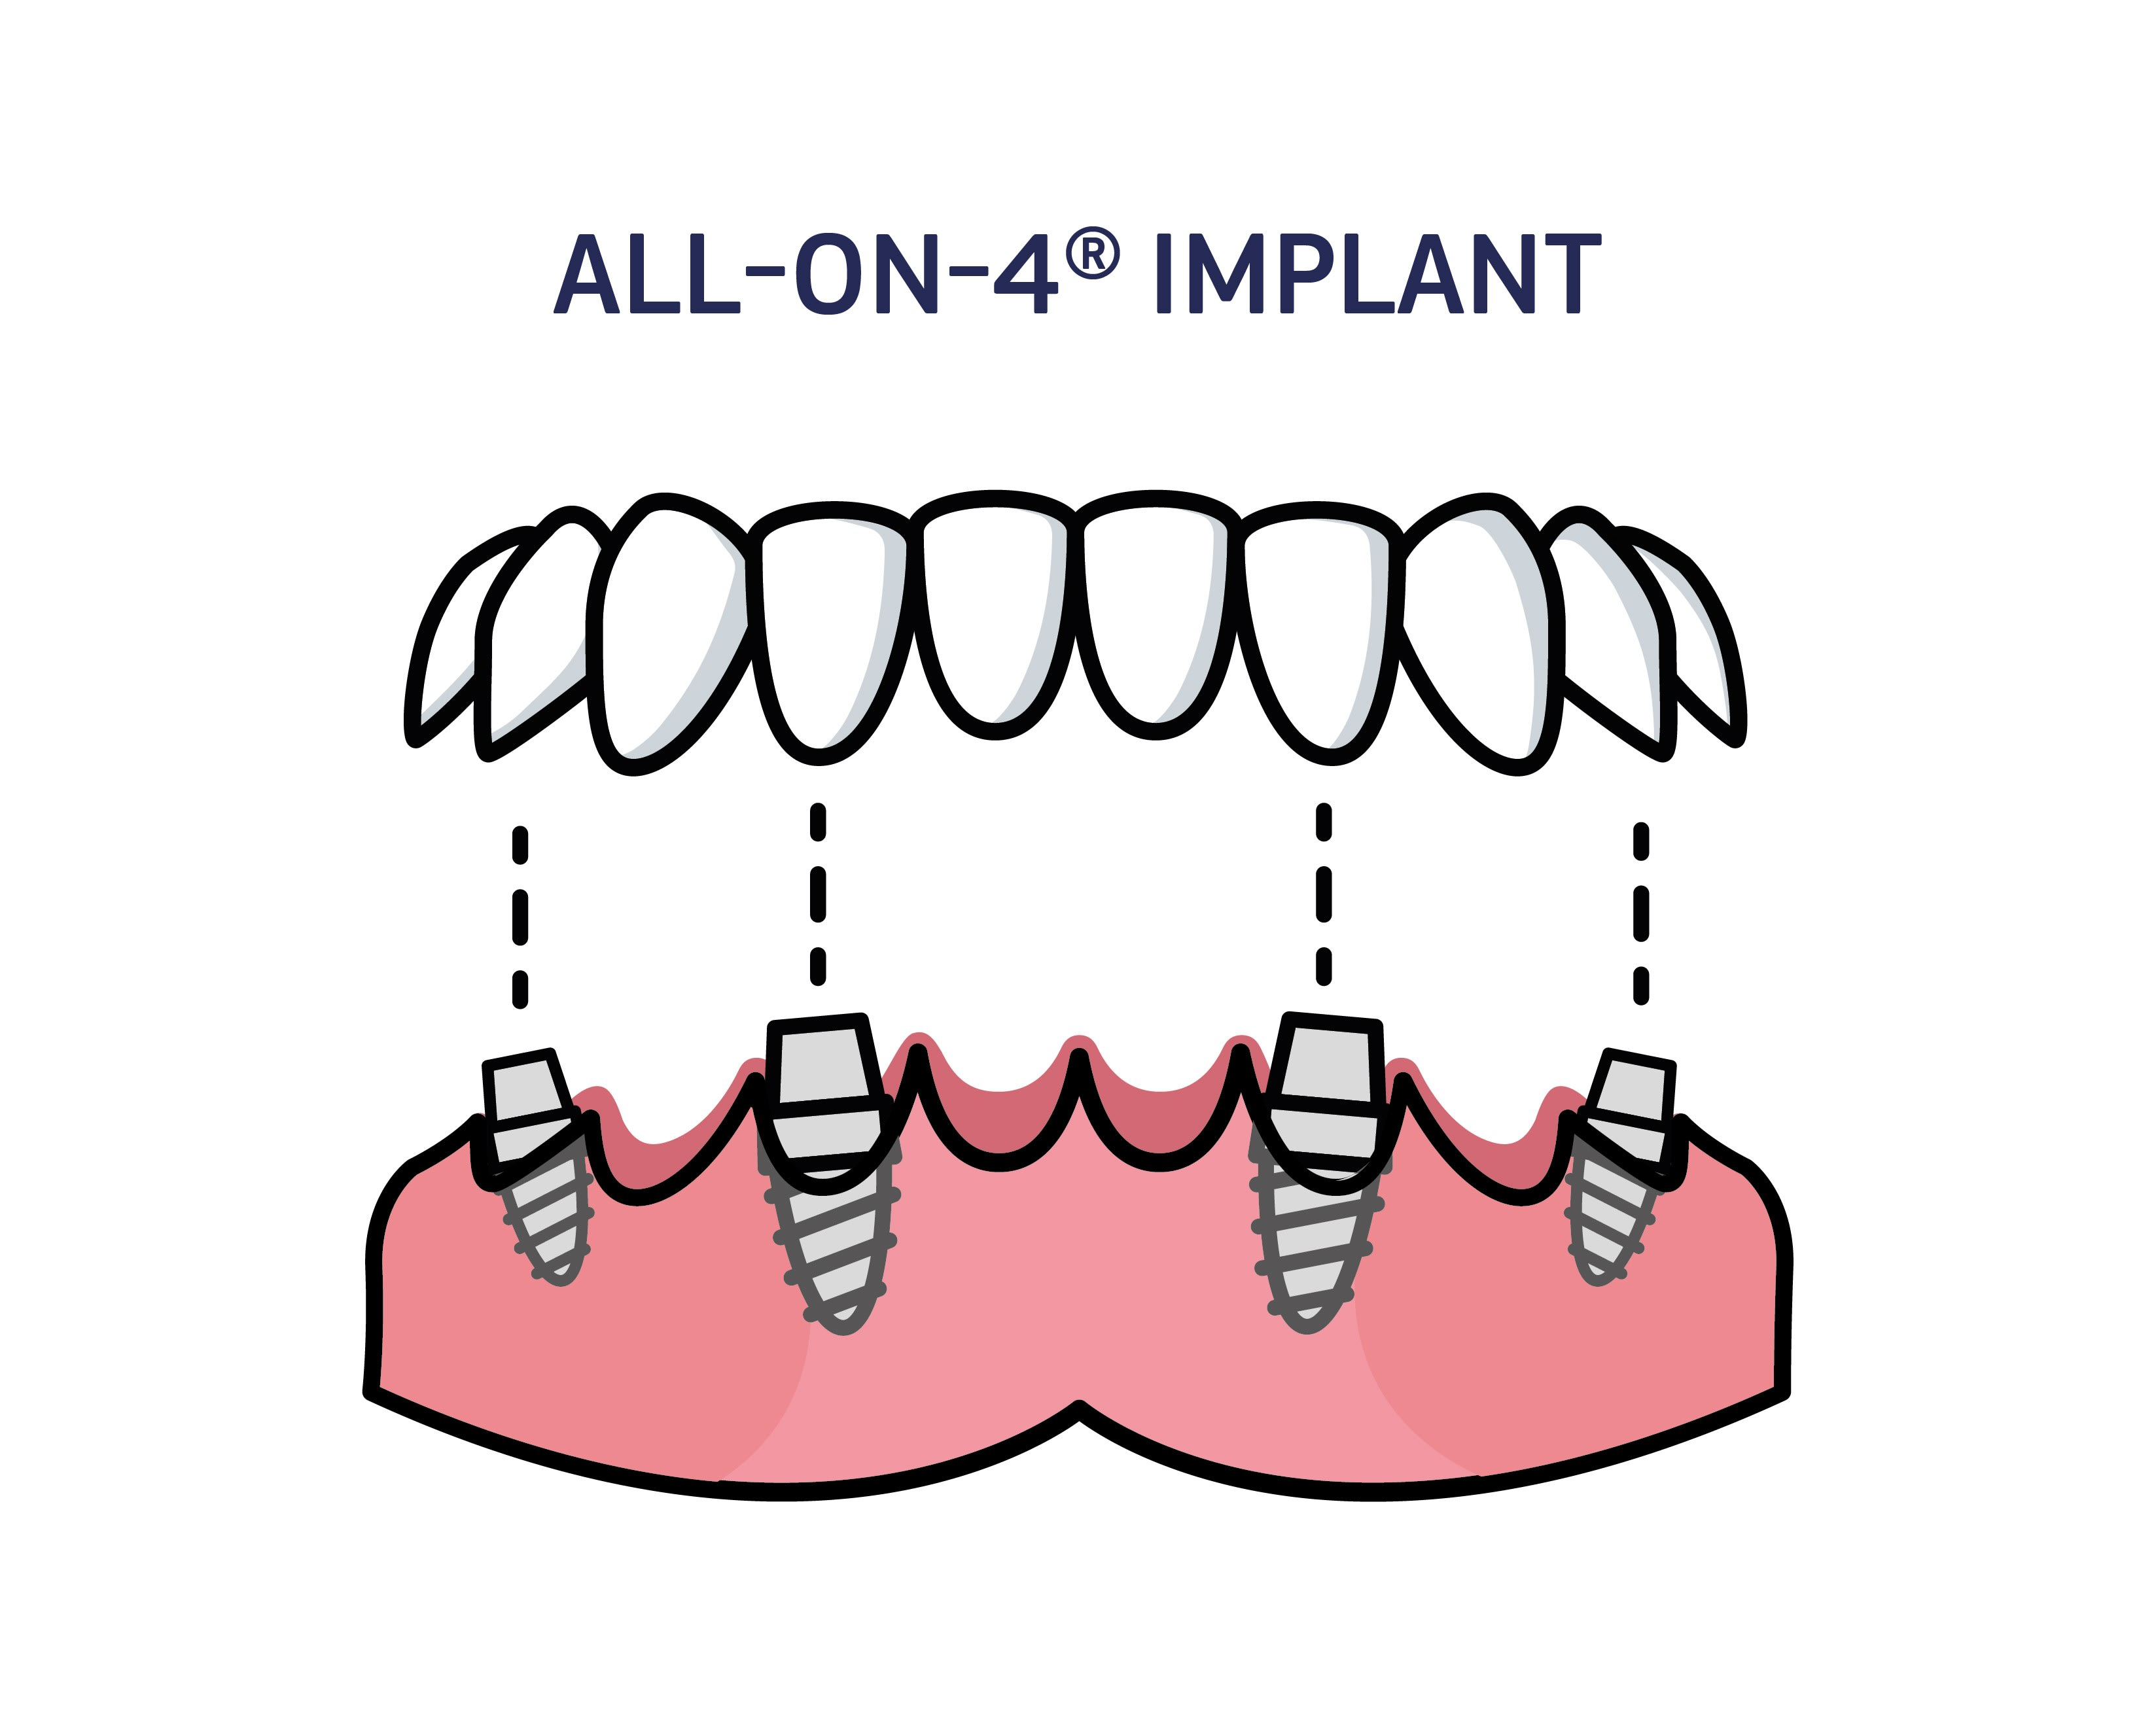 Infographic showing an all-on-4 implant and its components